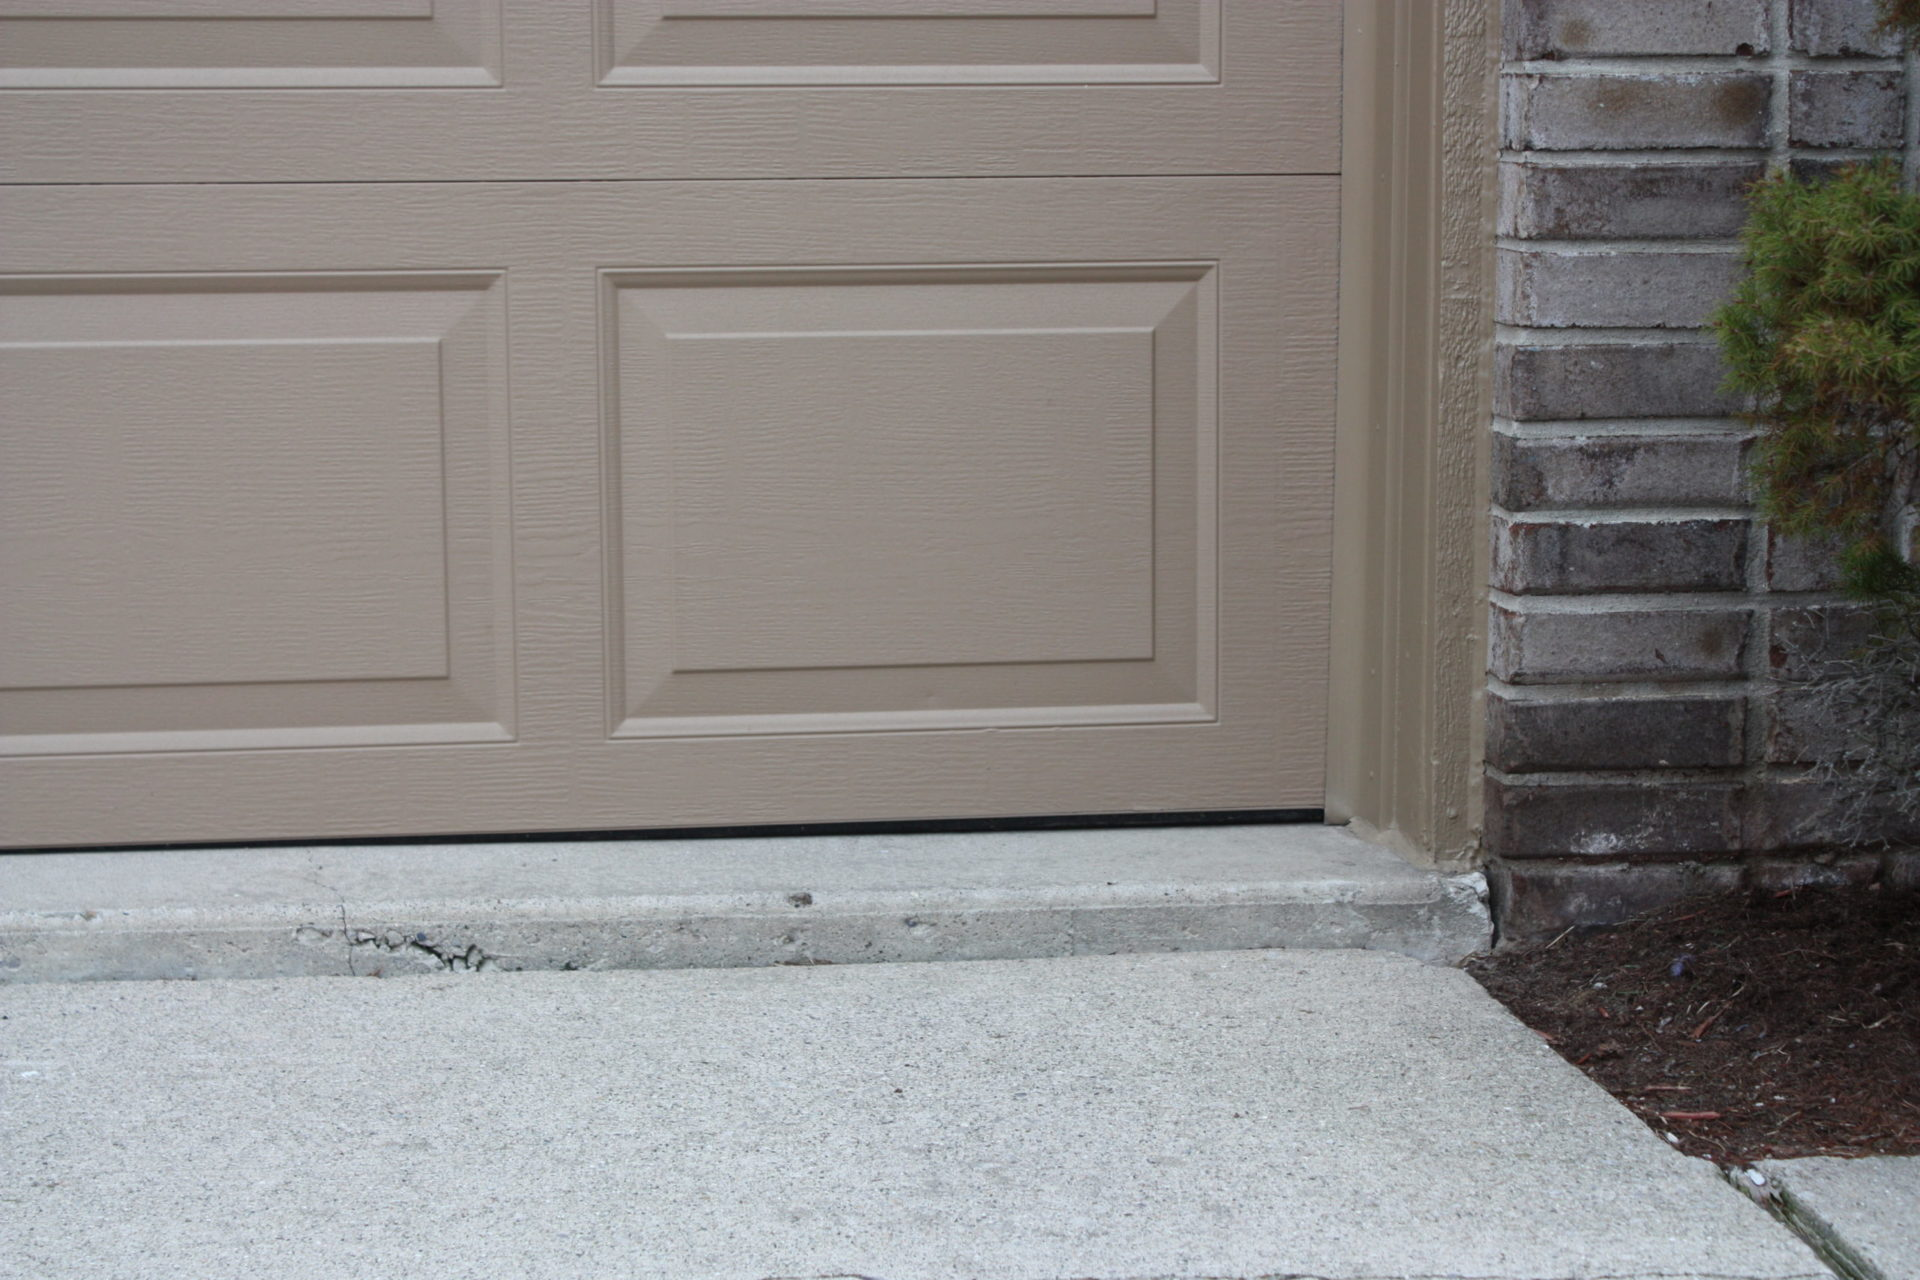 Concrete driveway sinking - before